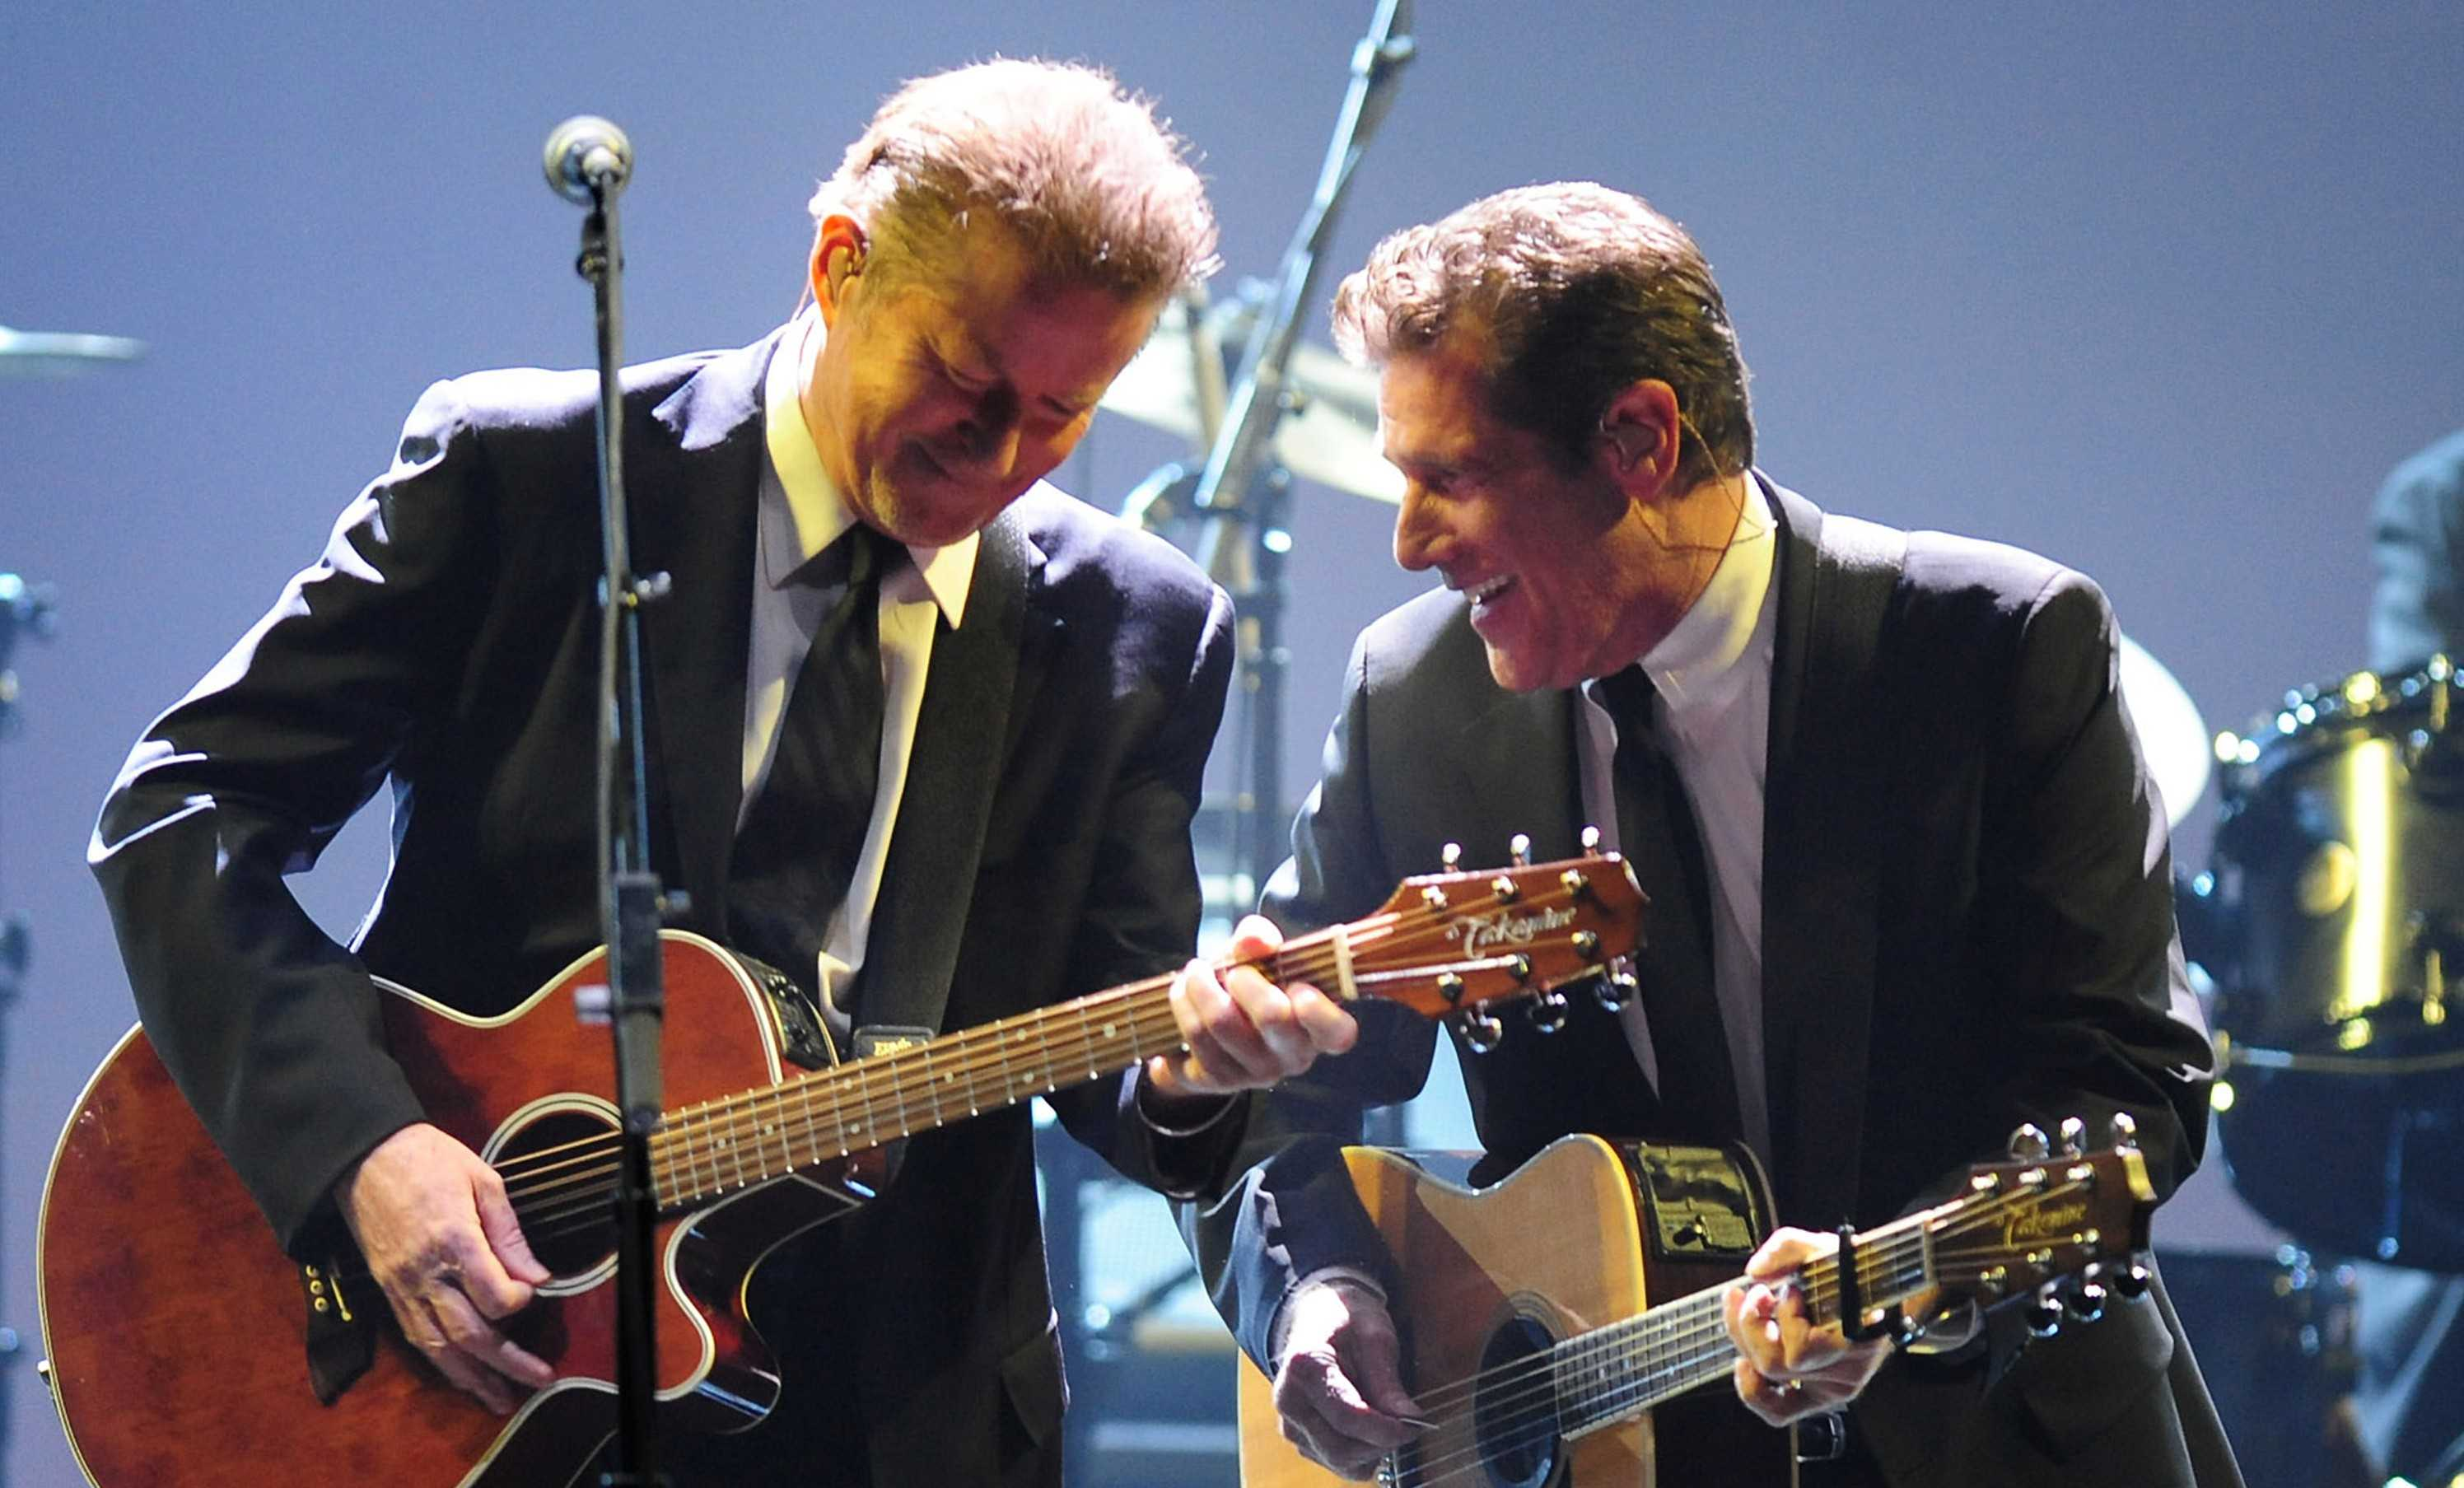 Don+Henley%2C+left%2C+and+Glenn+Frey+of+the+Eagles+perform+at+the+Time+Warner+Cable+Arena+in+Charlotte%2C+North+Carolina%2C+Wednesday%2C+January+14%2C+2009.+%28Jeff+Siner%2FCharlotte+Observer%2FMCT%29